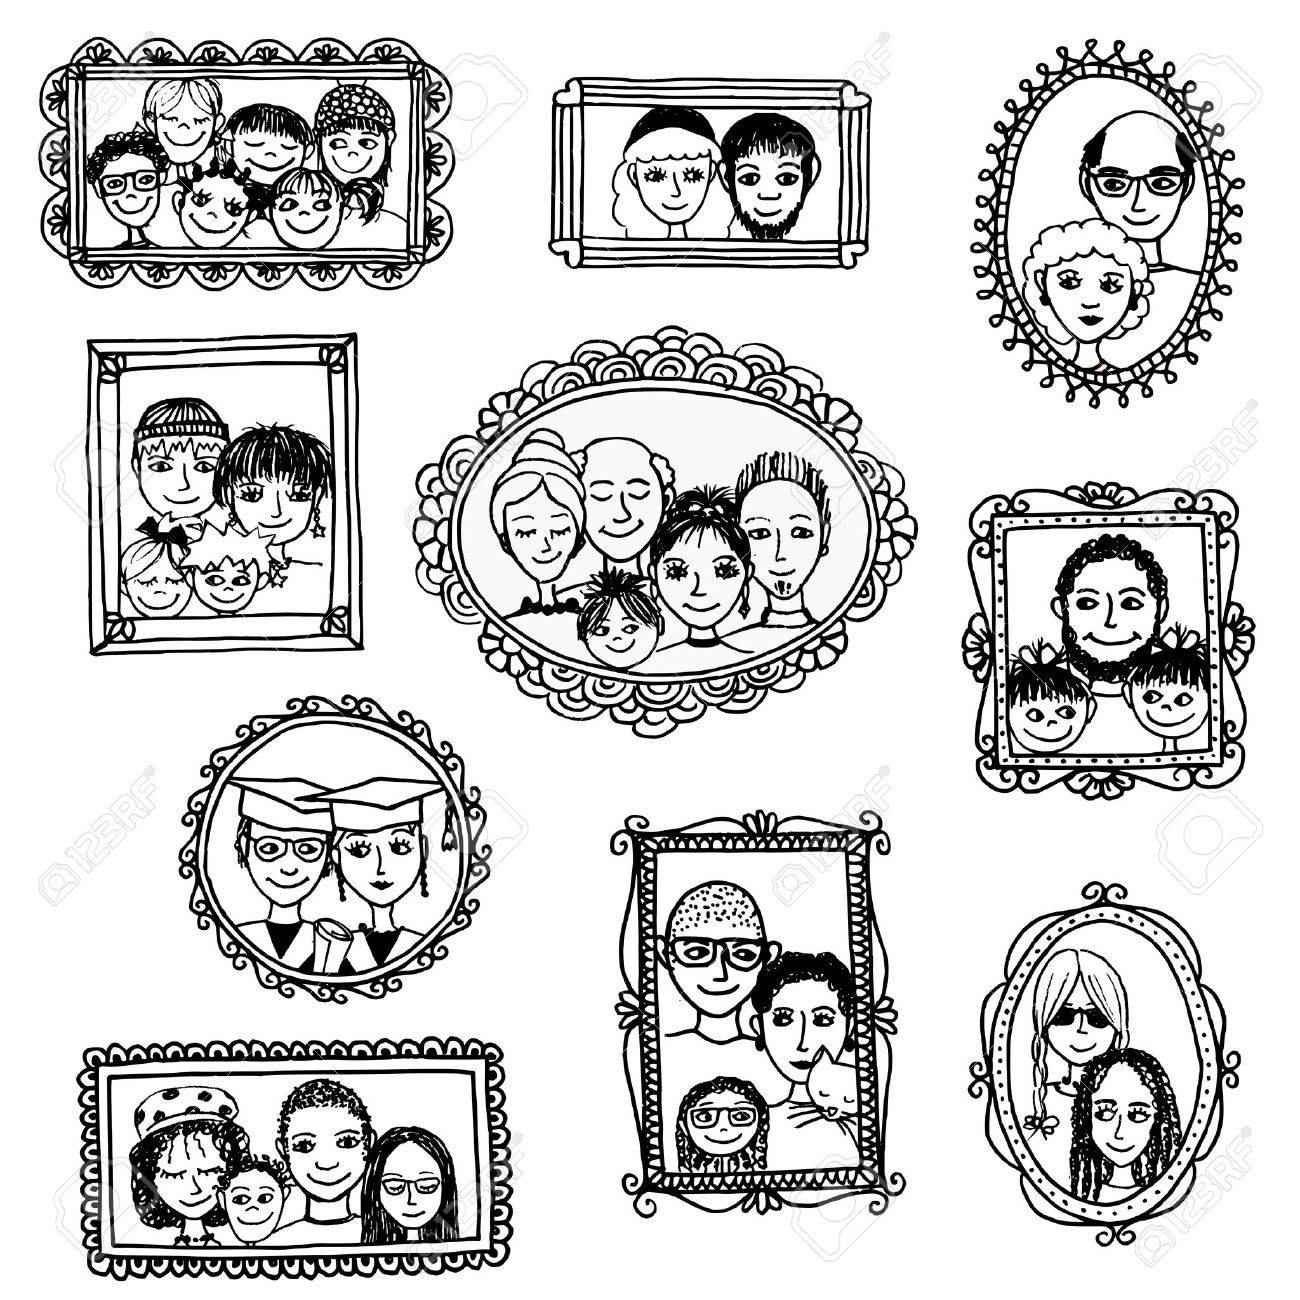 Cute Hand Drawn Picture Frames With Family Portraits Royalty Free ...